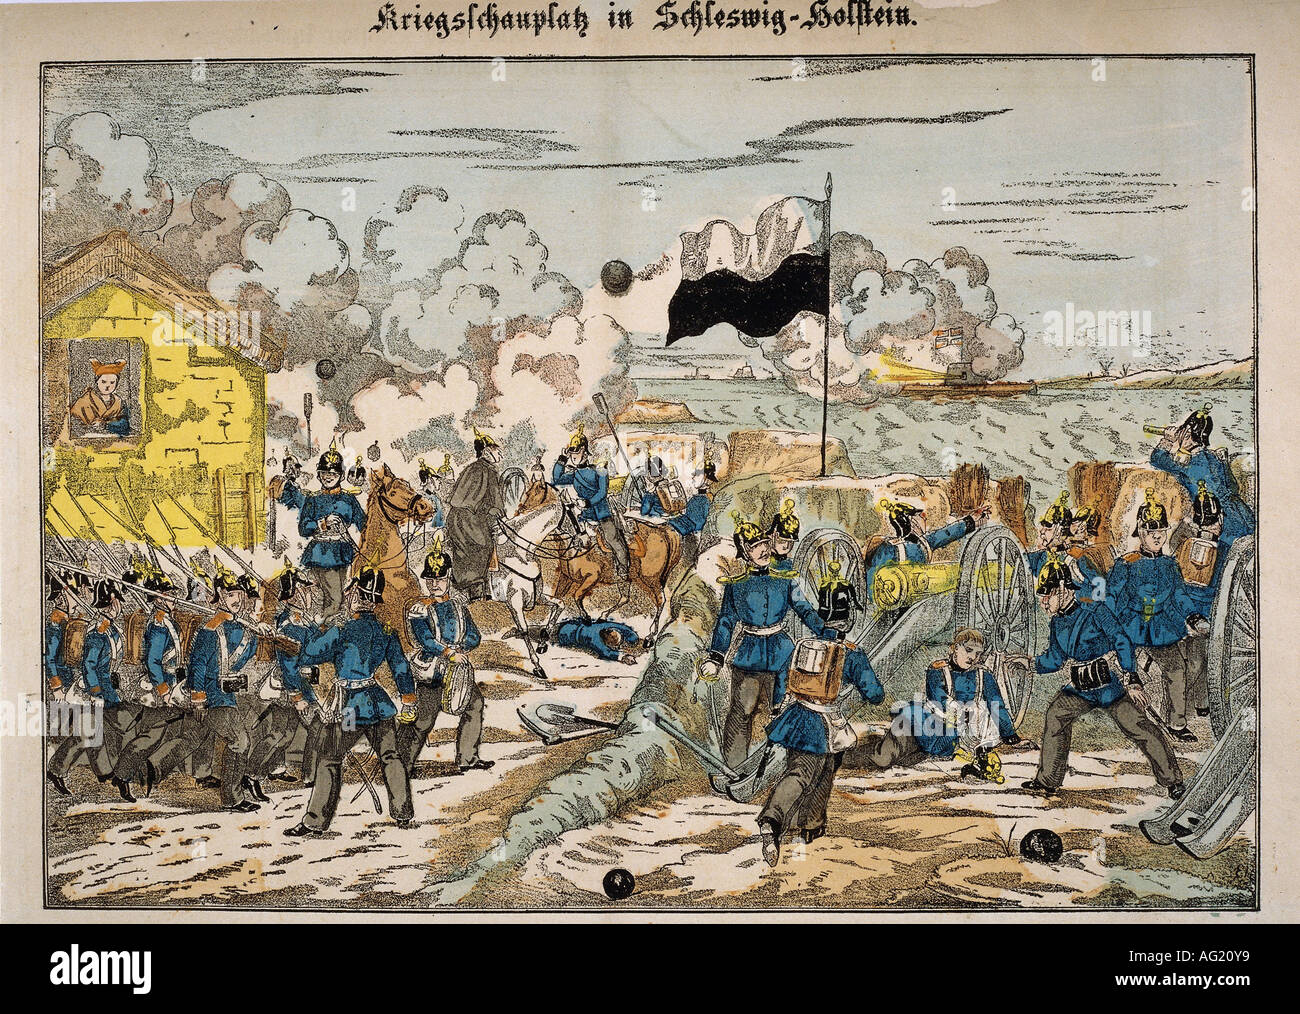 Events Second War Of Schleswig 1866 Engangement In The Flensburg